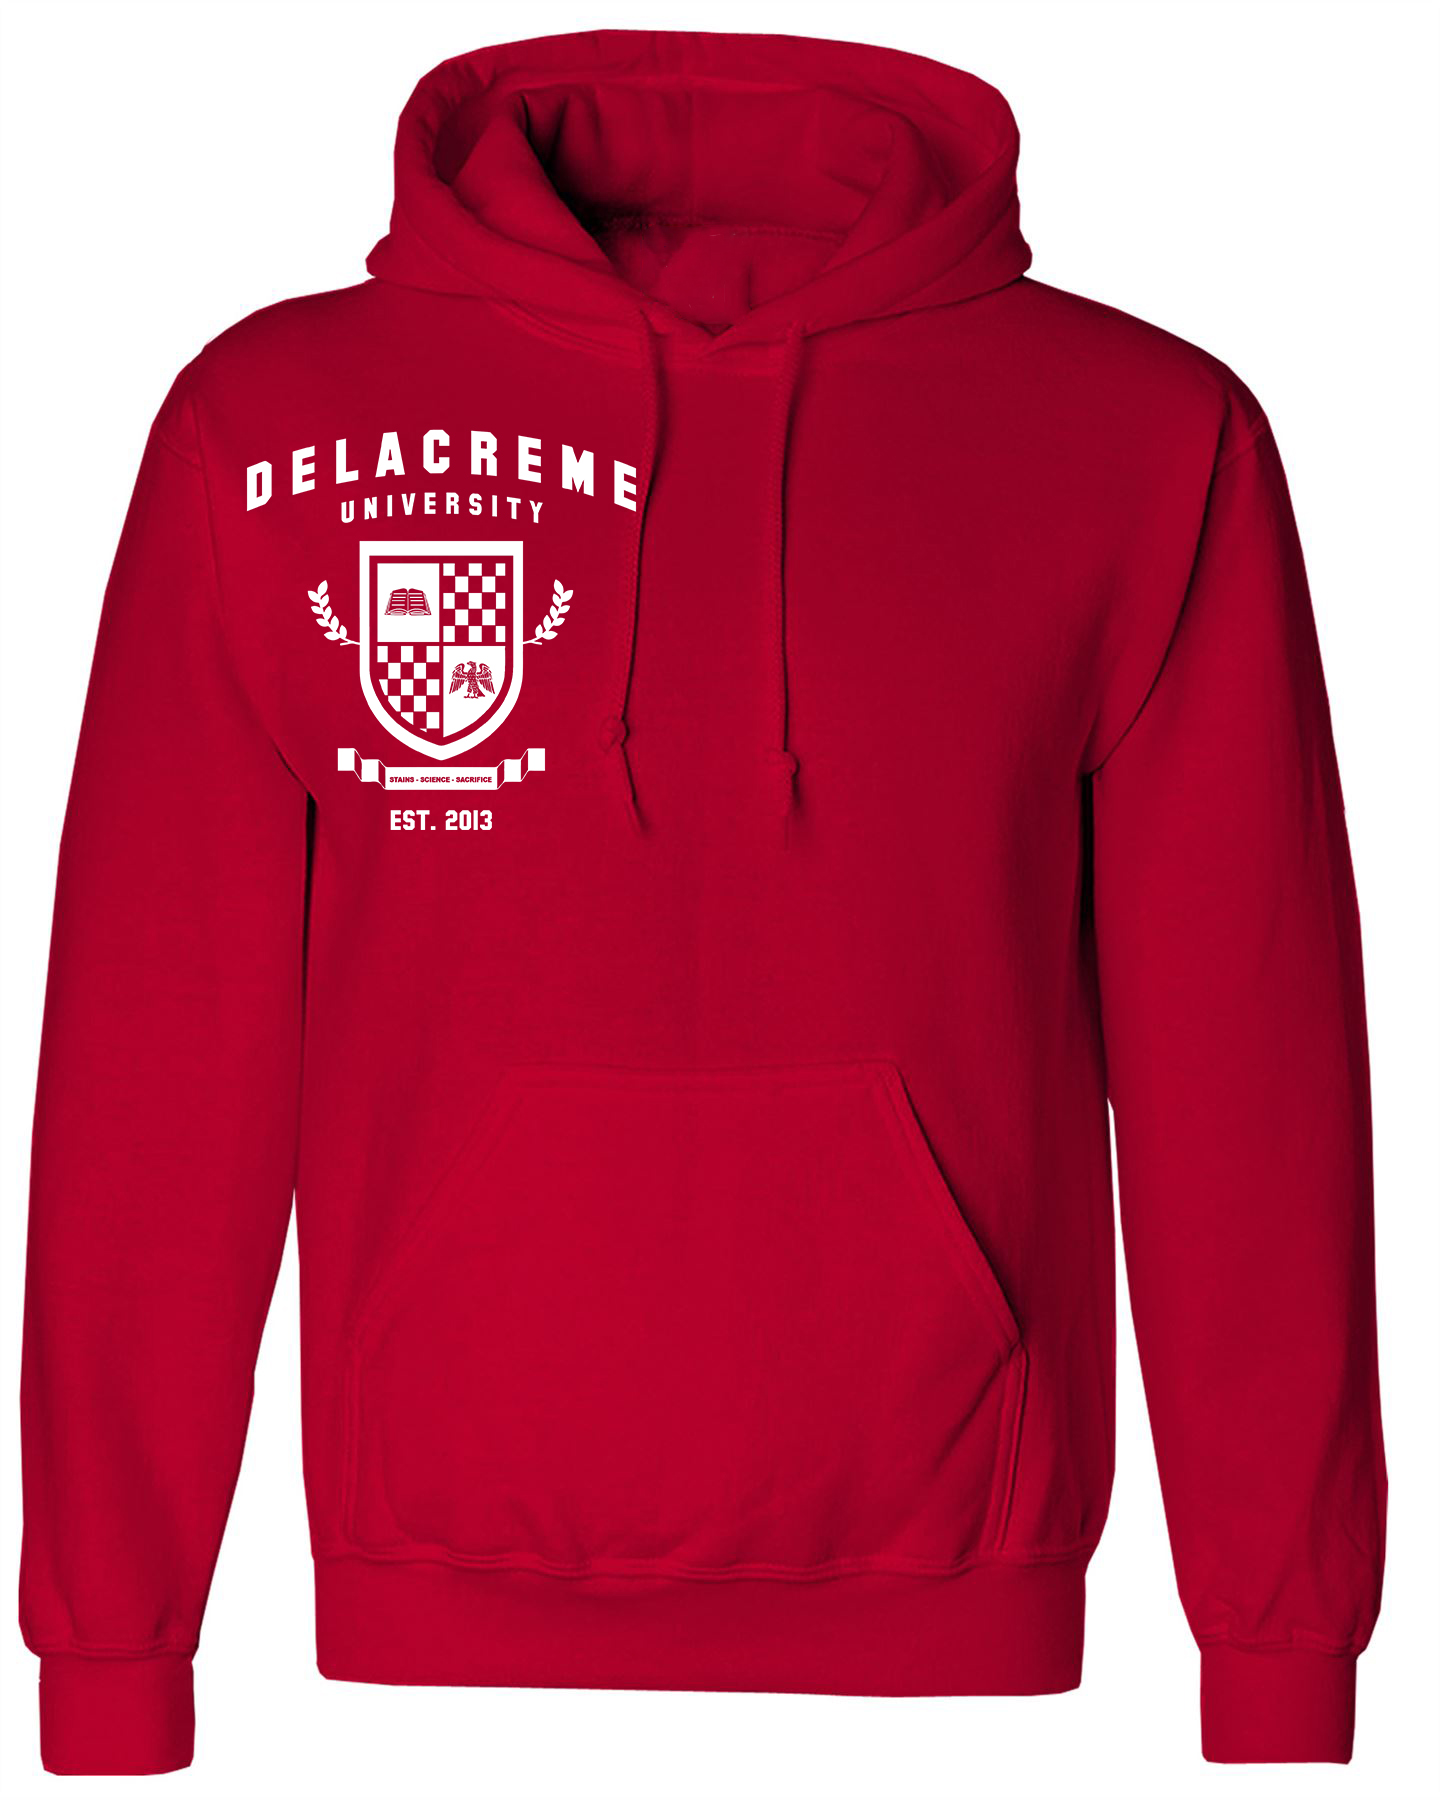 the delacreme univeristy hoodie -cherry red